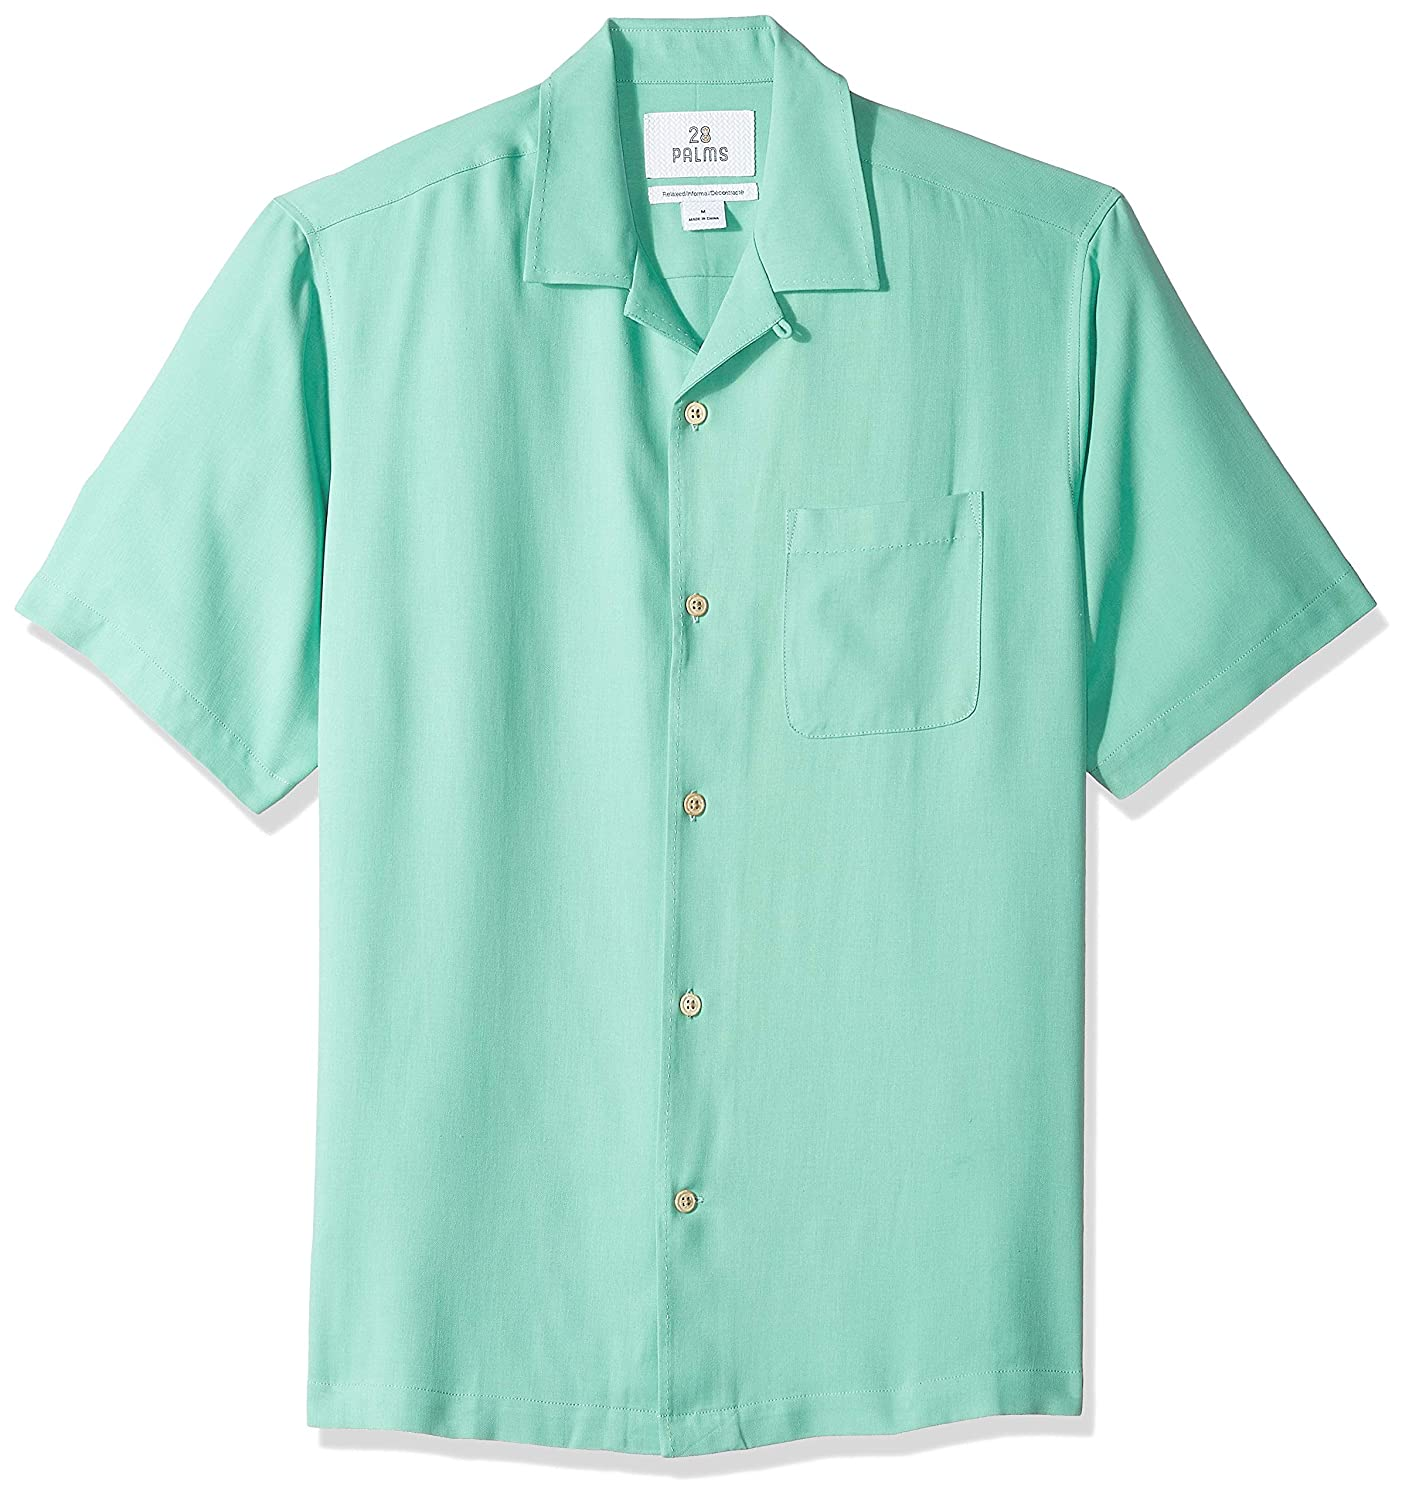 28 Palms Mens Relaxed-Fit Camp Shirt Brand